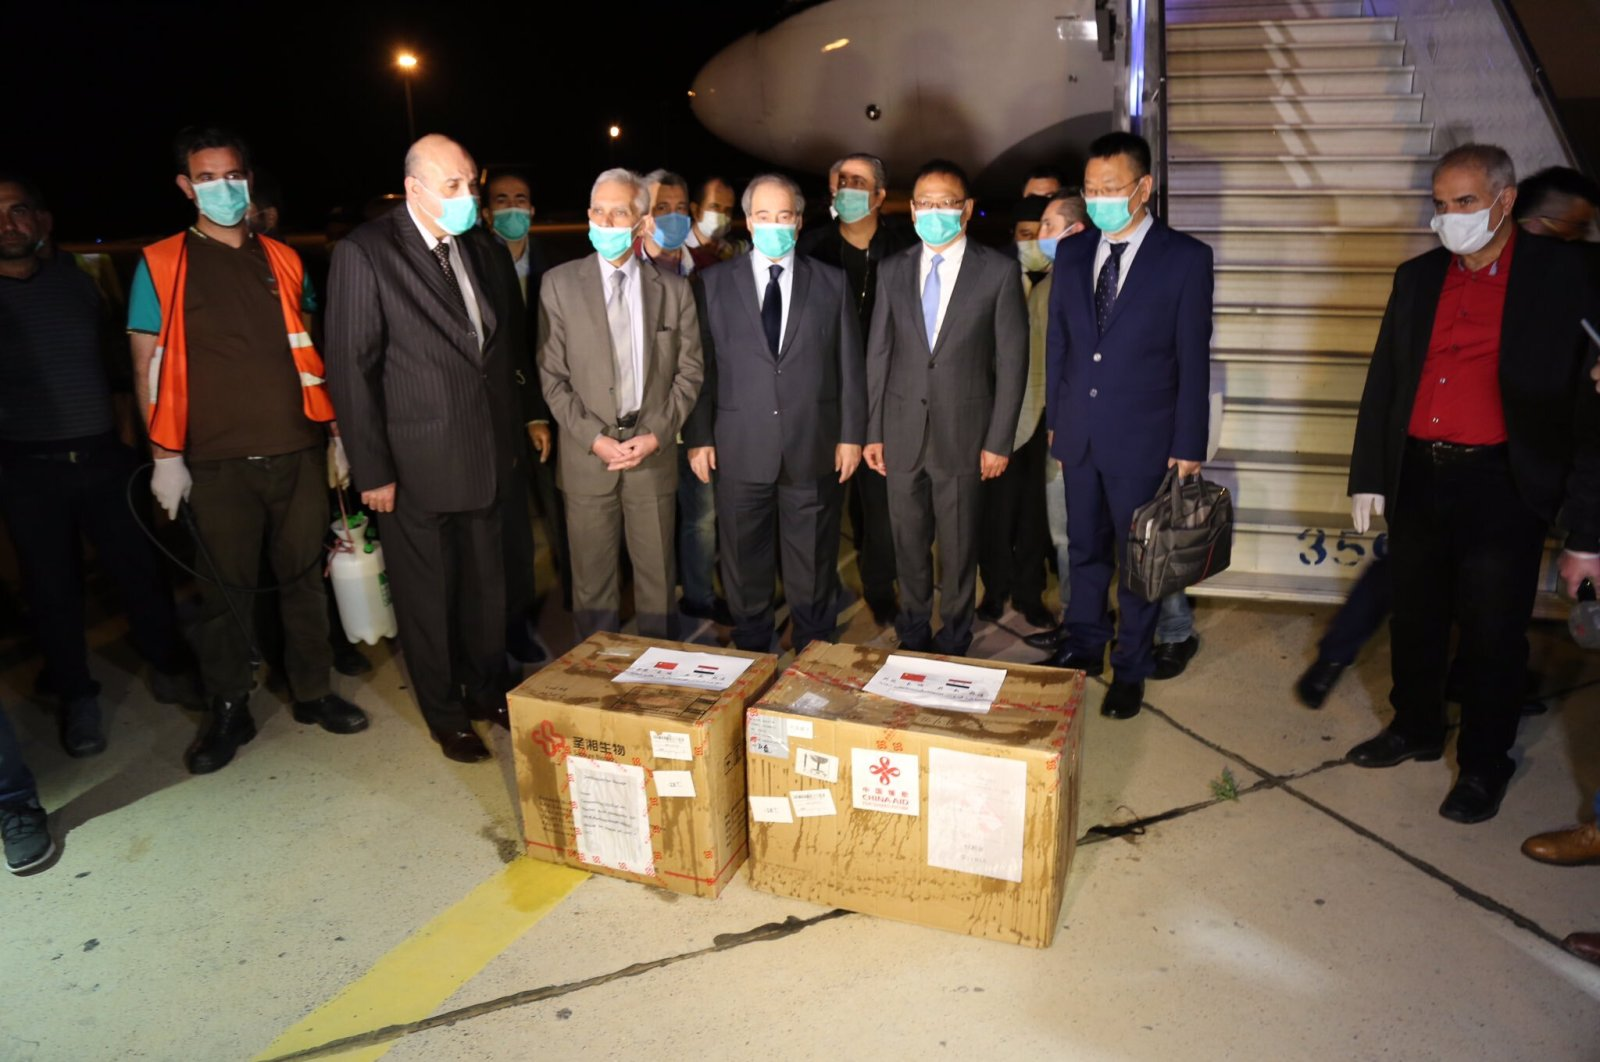 The two boxes of aid China delivered to the Assad regime amid full media coverage, Damascus, Syria, April 15, 2020.